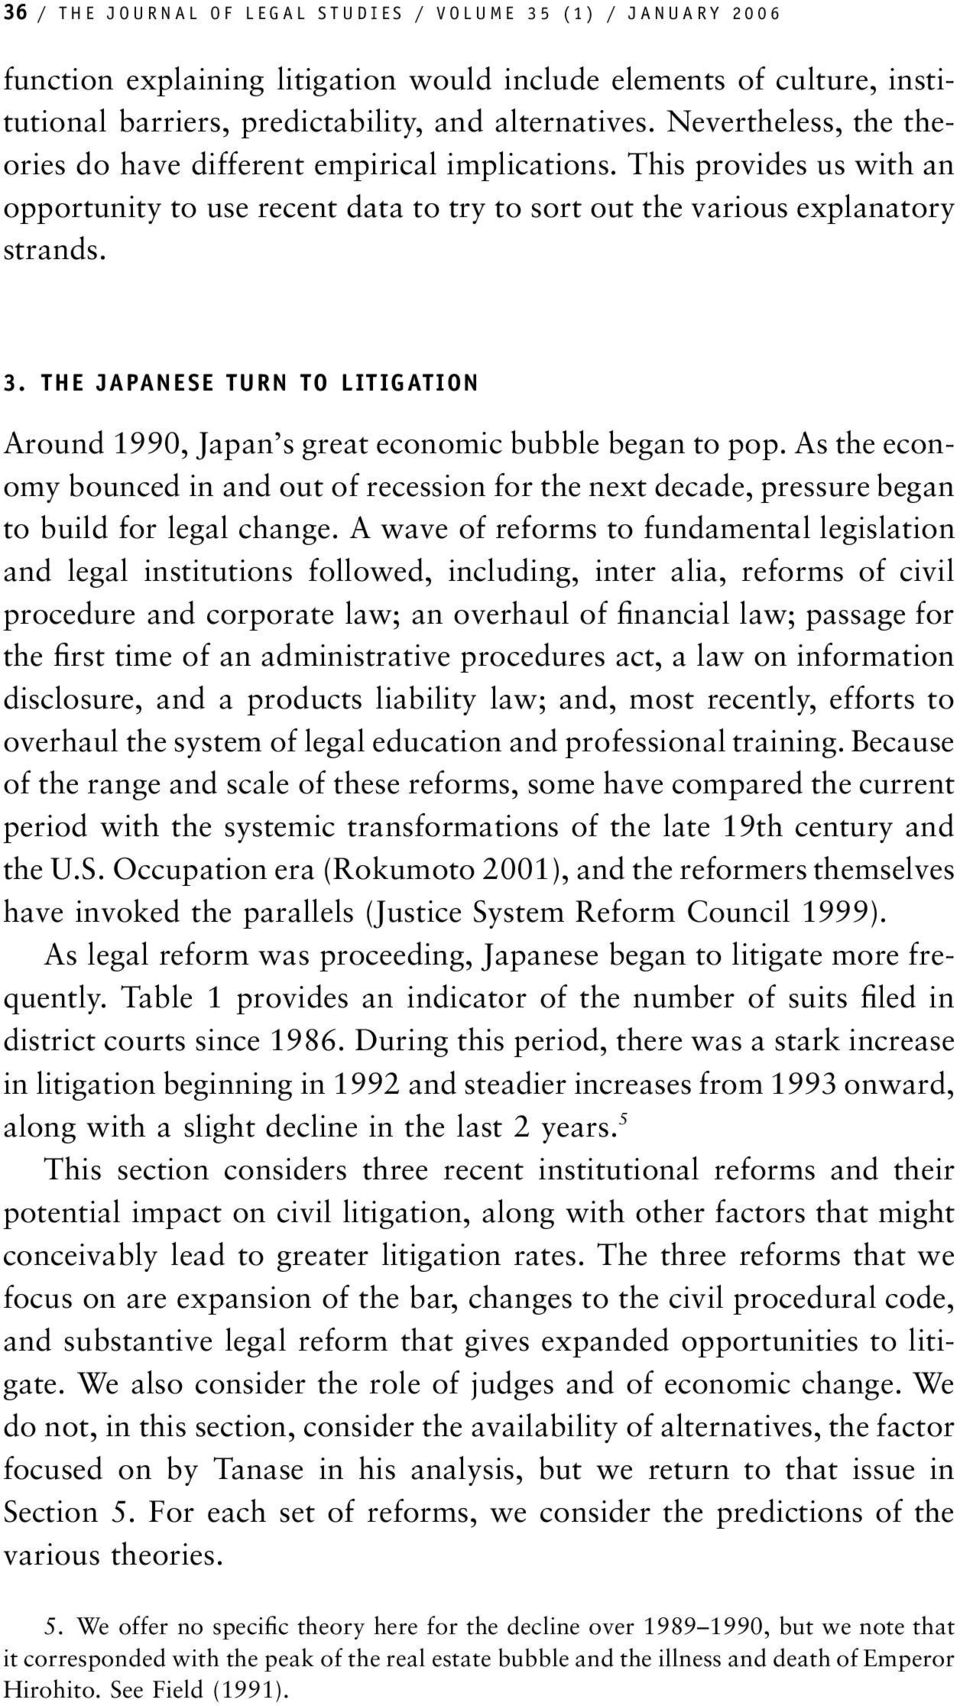 THE JAPANESE TURN TO LITIGATION Around 1990, Japan s great economic bubble began to pop. As the economy bounced in and out of recession for the next decade, pressure began to build for legal change.